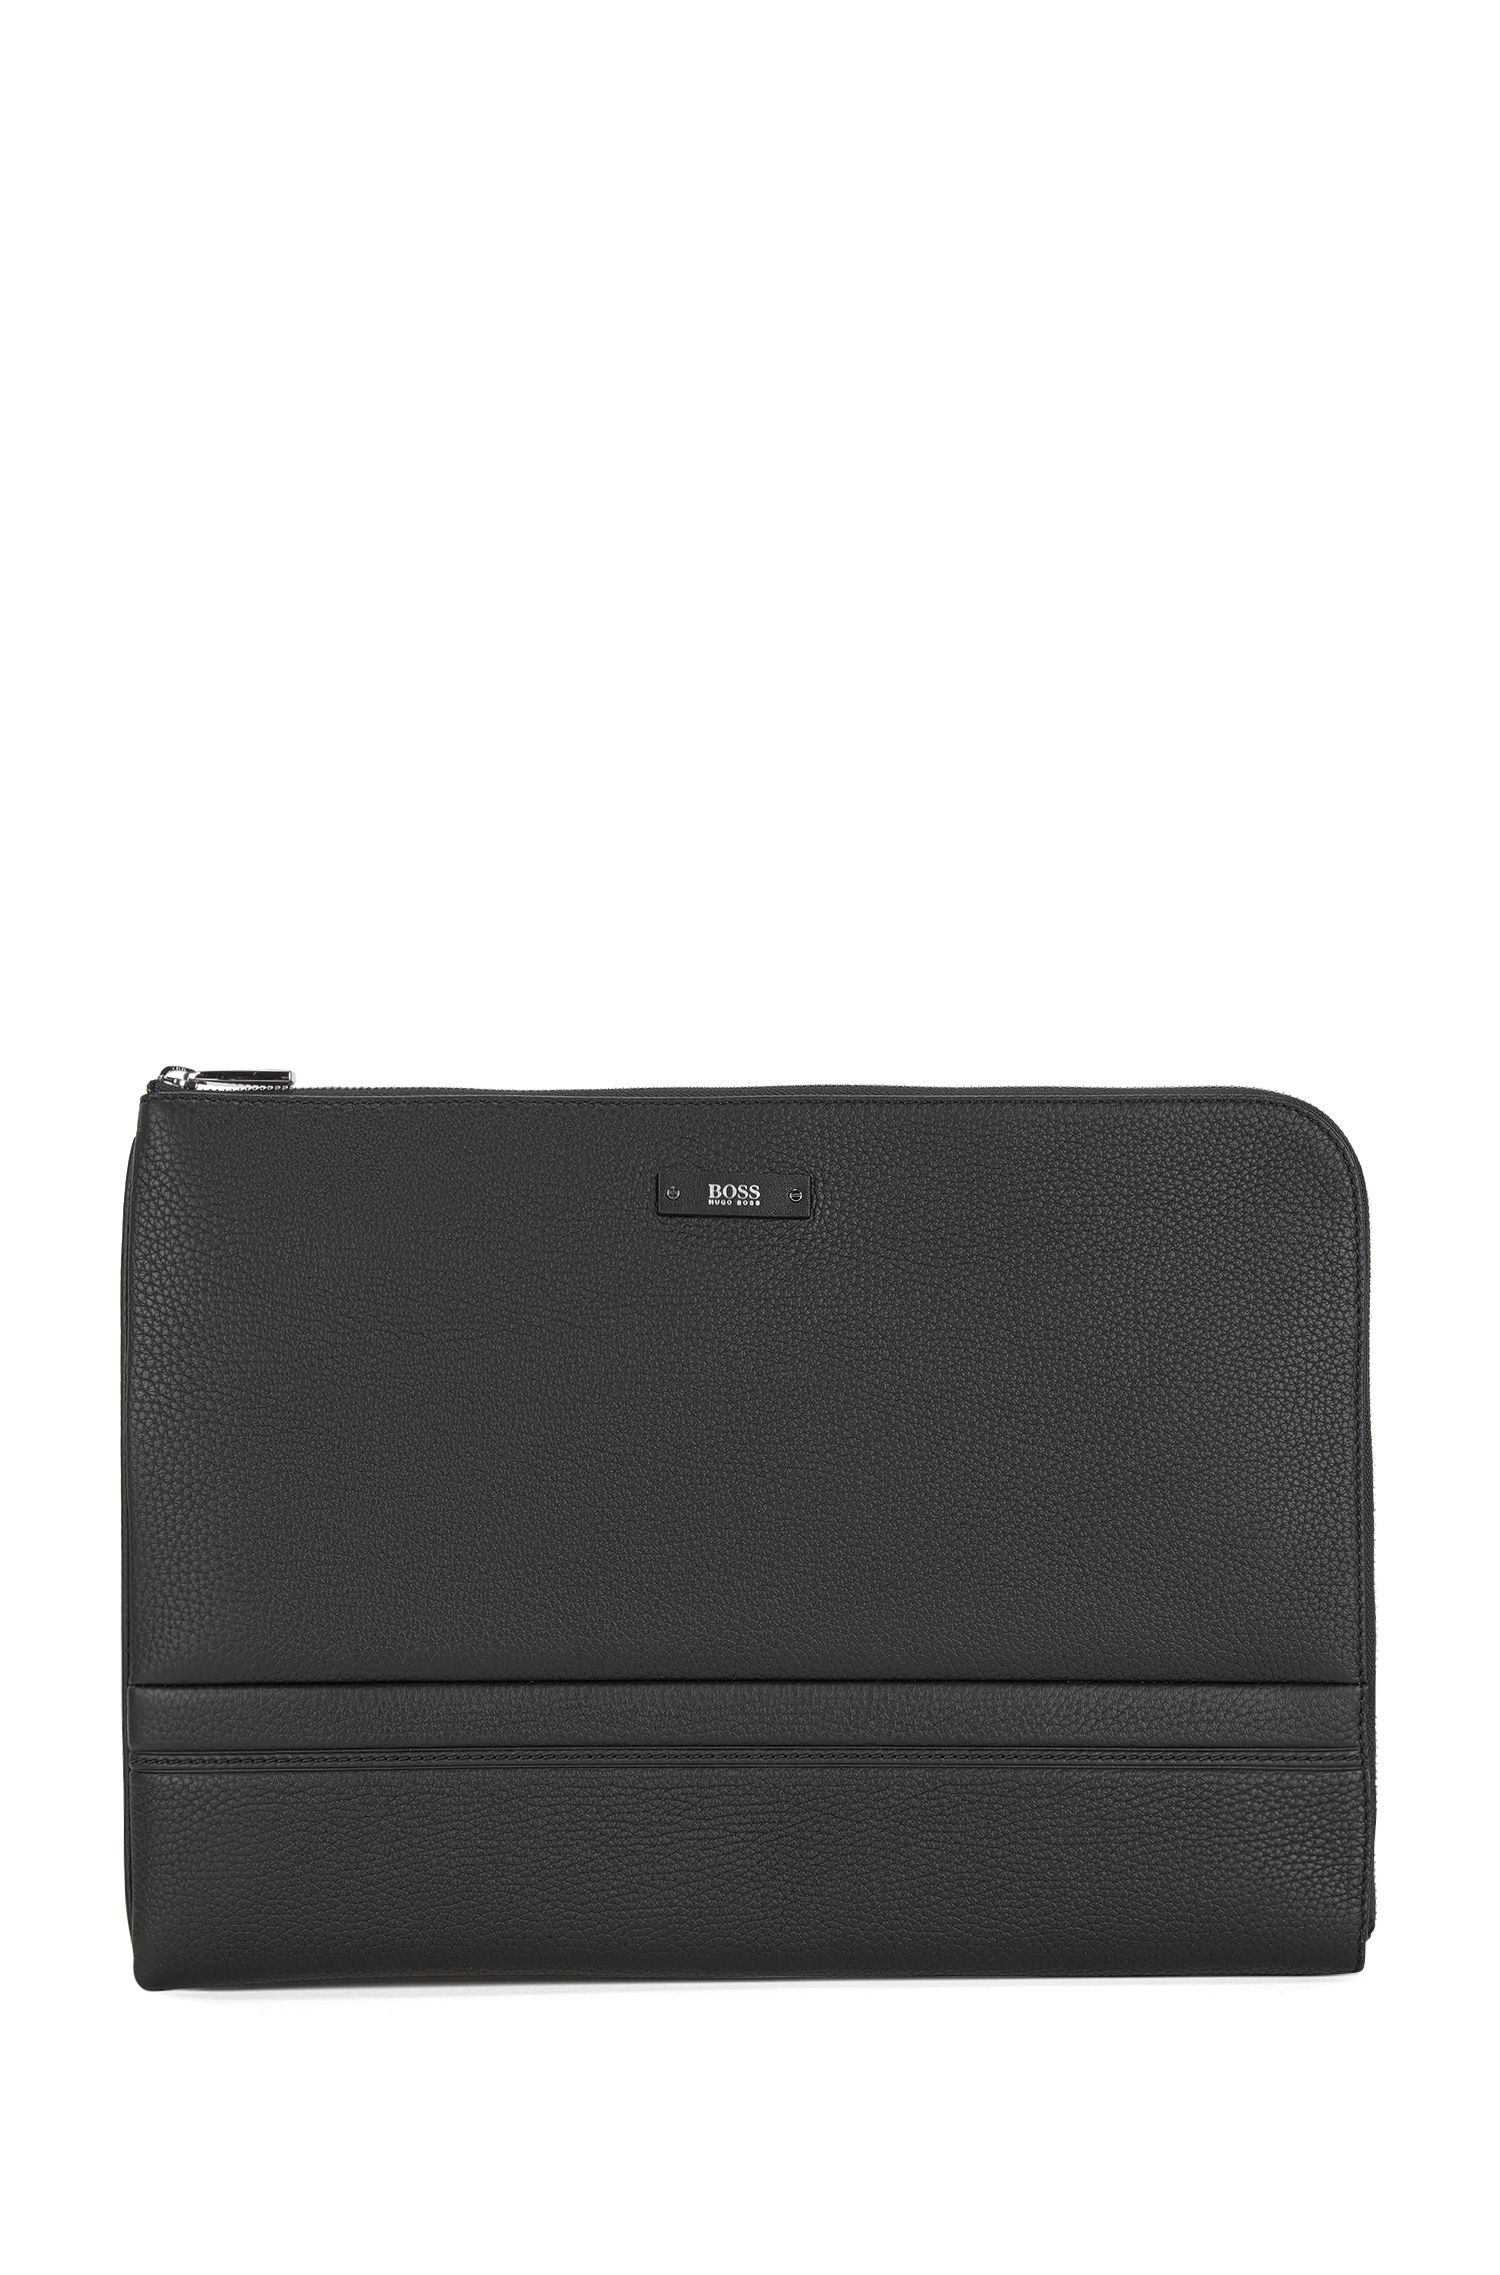 Portfolio case in grained leather